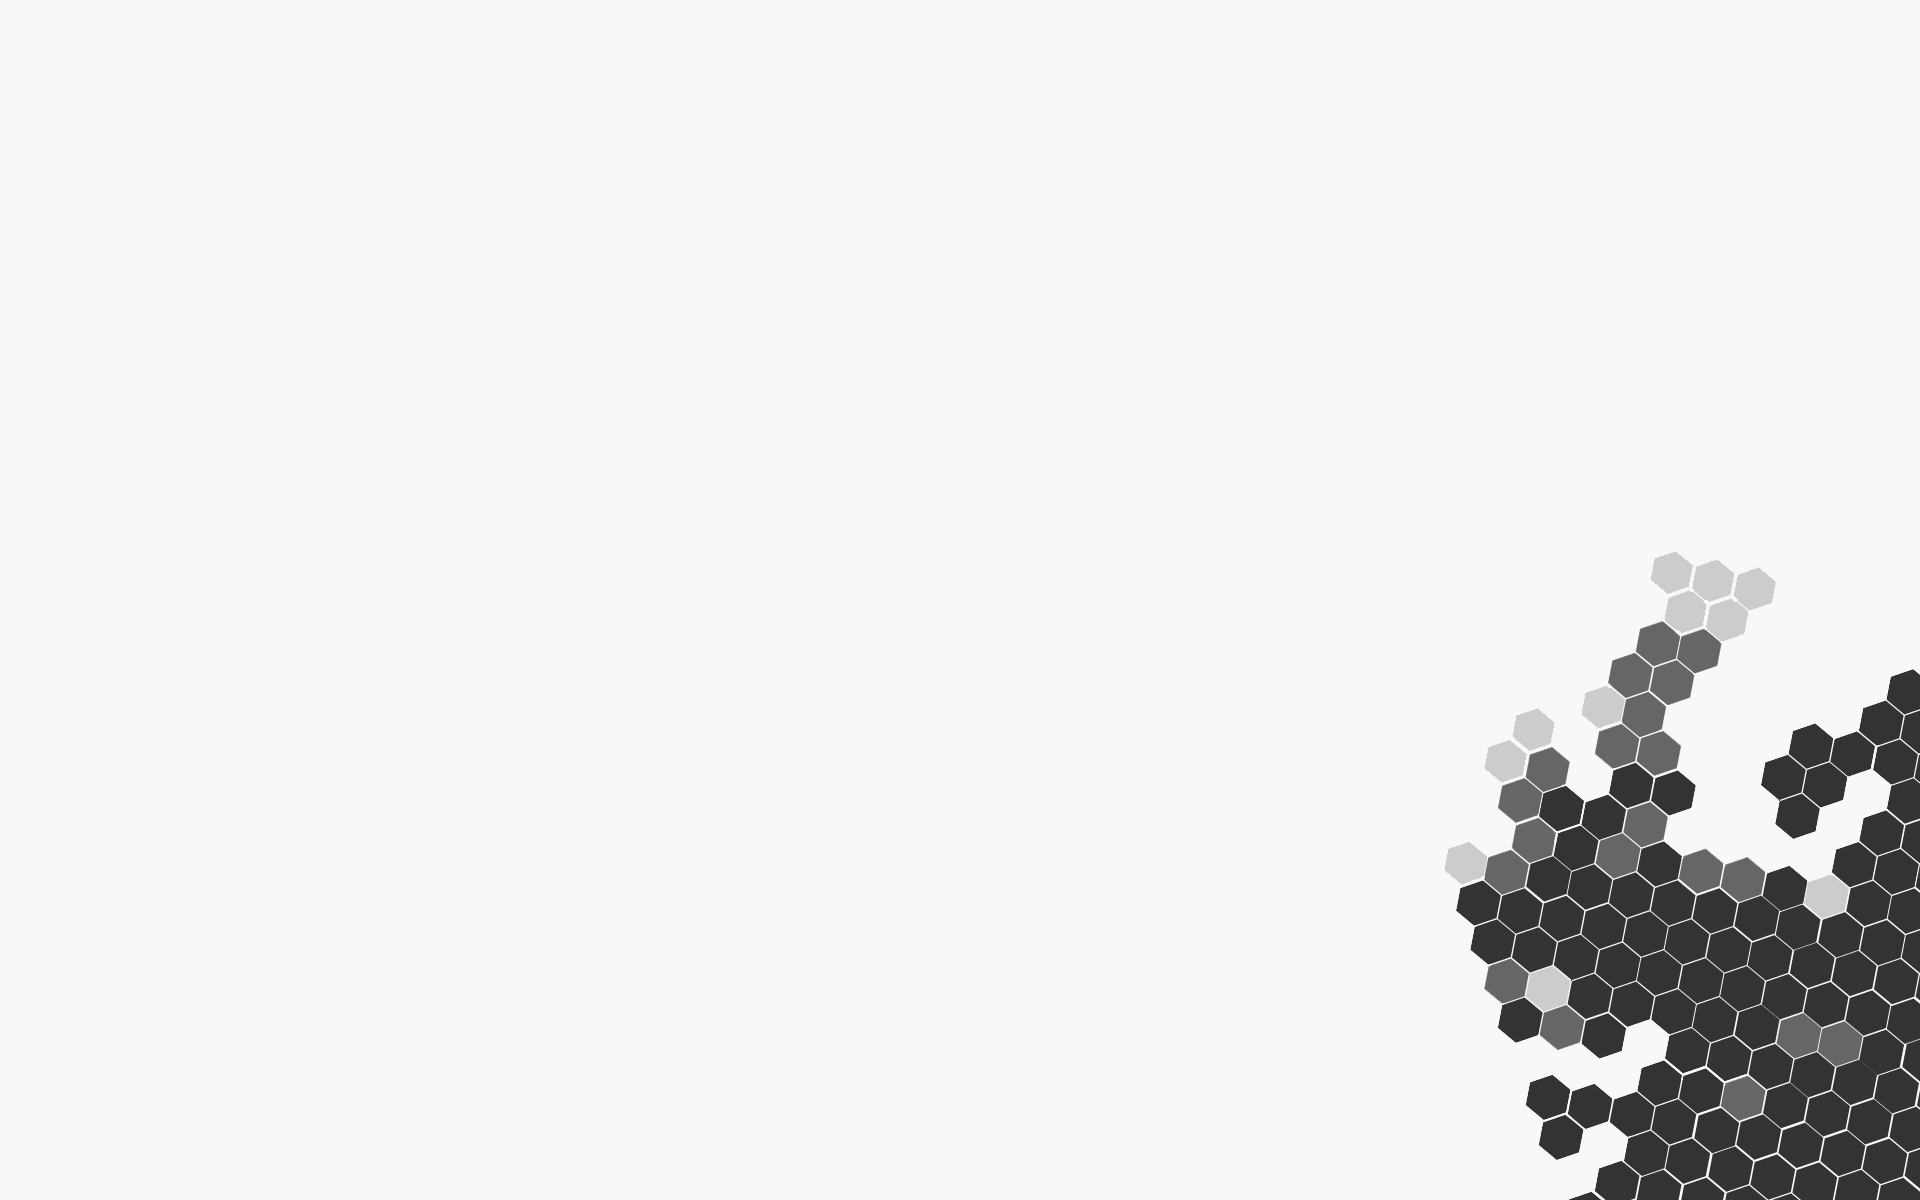 Plain White Wallpapers Group (65+)